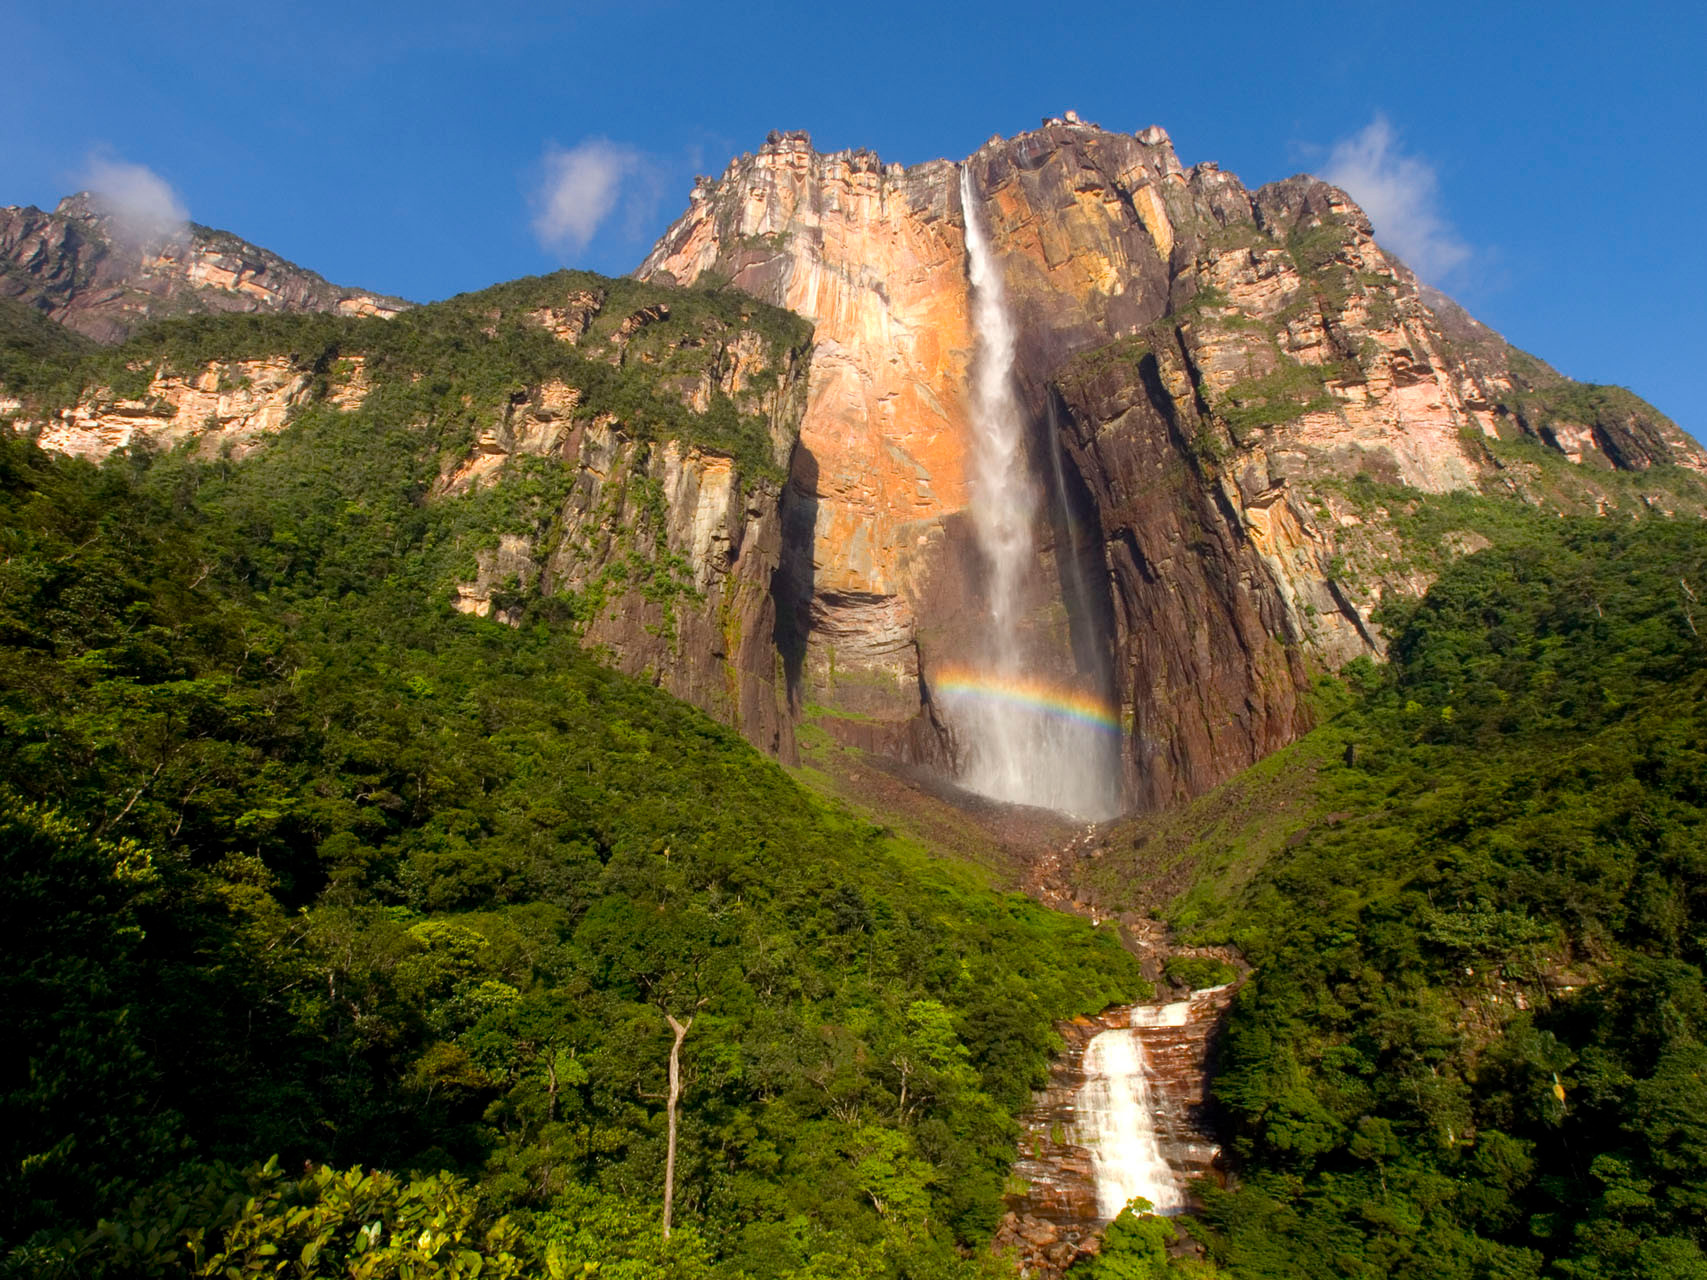 Venezuela: Canaima National Park: world's highest uninterrupted waterfall, with a height of 979 m and a plunge of 807 m [Venezuela, 2009]